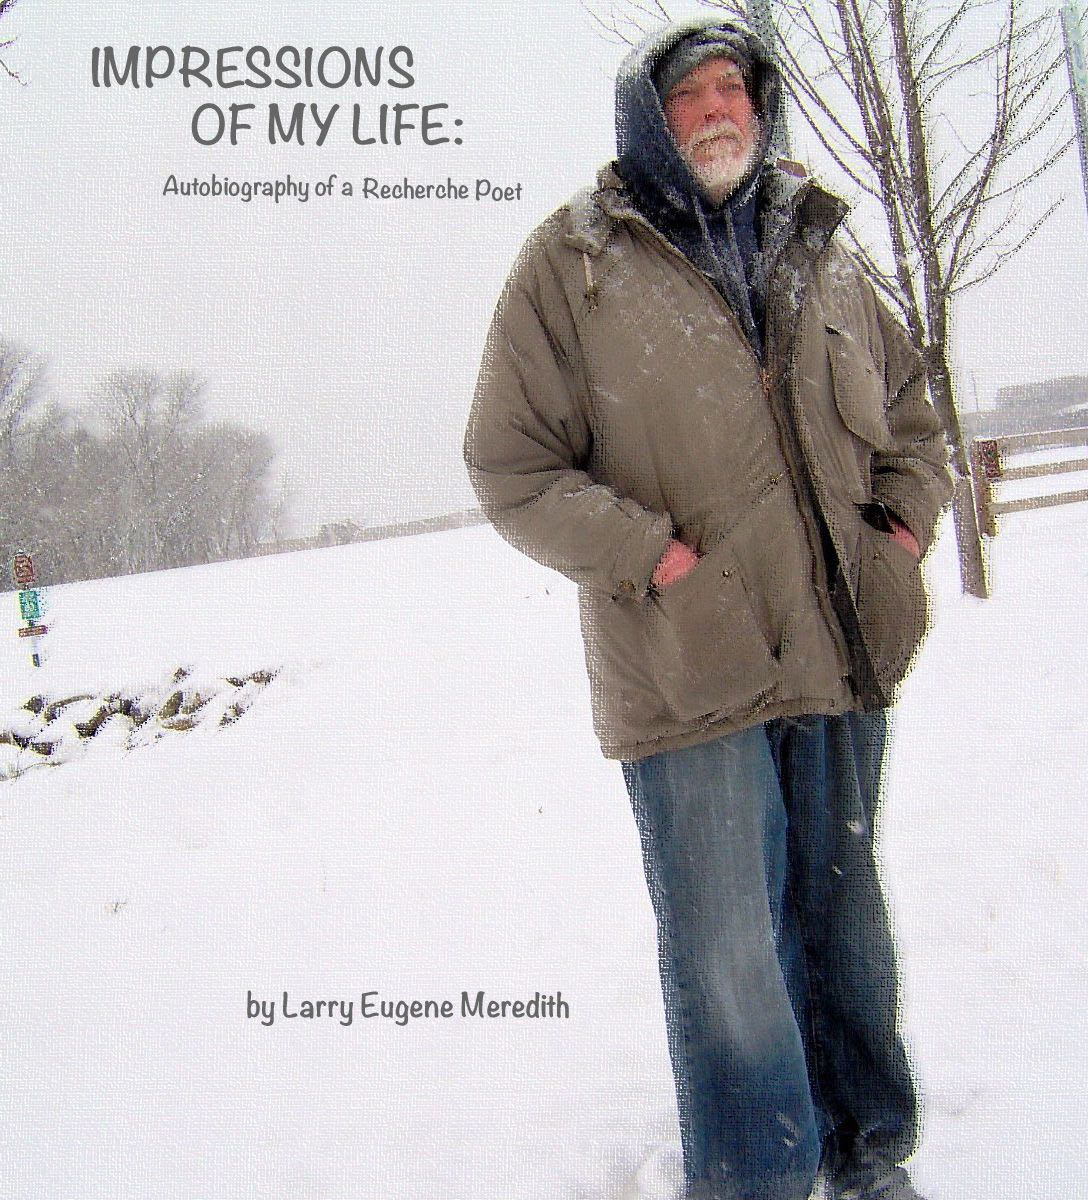 IMPRESSIONS OF MY LIFE: AUTOBIOGRAPHY OF A RECHERCHE POET